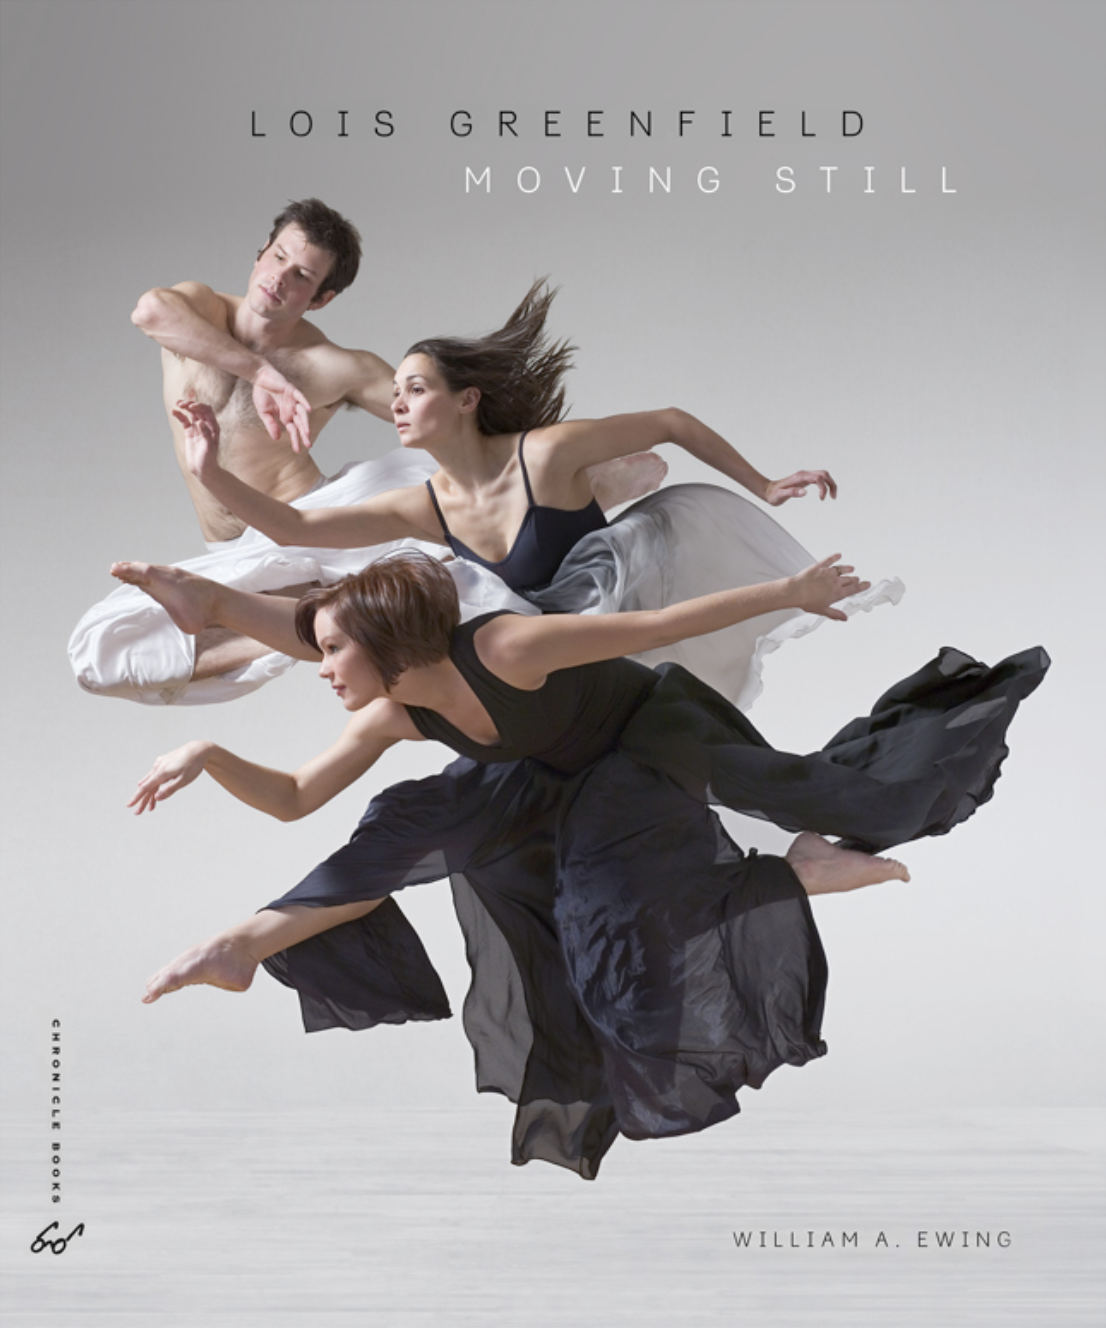 Lois Greenfield Moving Still Dance Ballet Luxury Lifestyle Photography Zeel Wellness Books Luxury Coffee Table Books